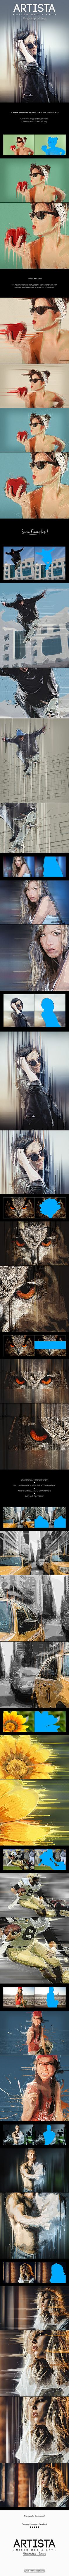 Artista - Mixed Media Art Photoshop Action - Photo Effects Actions